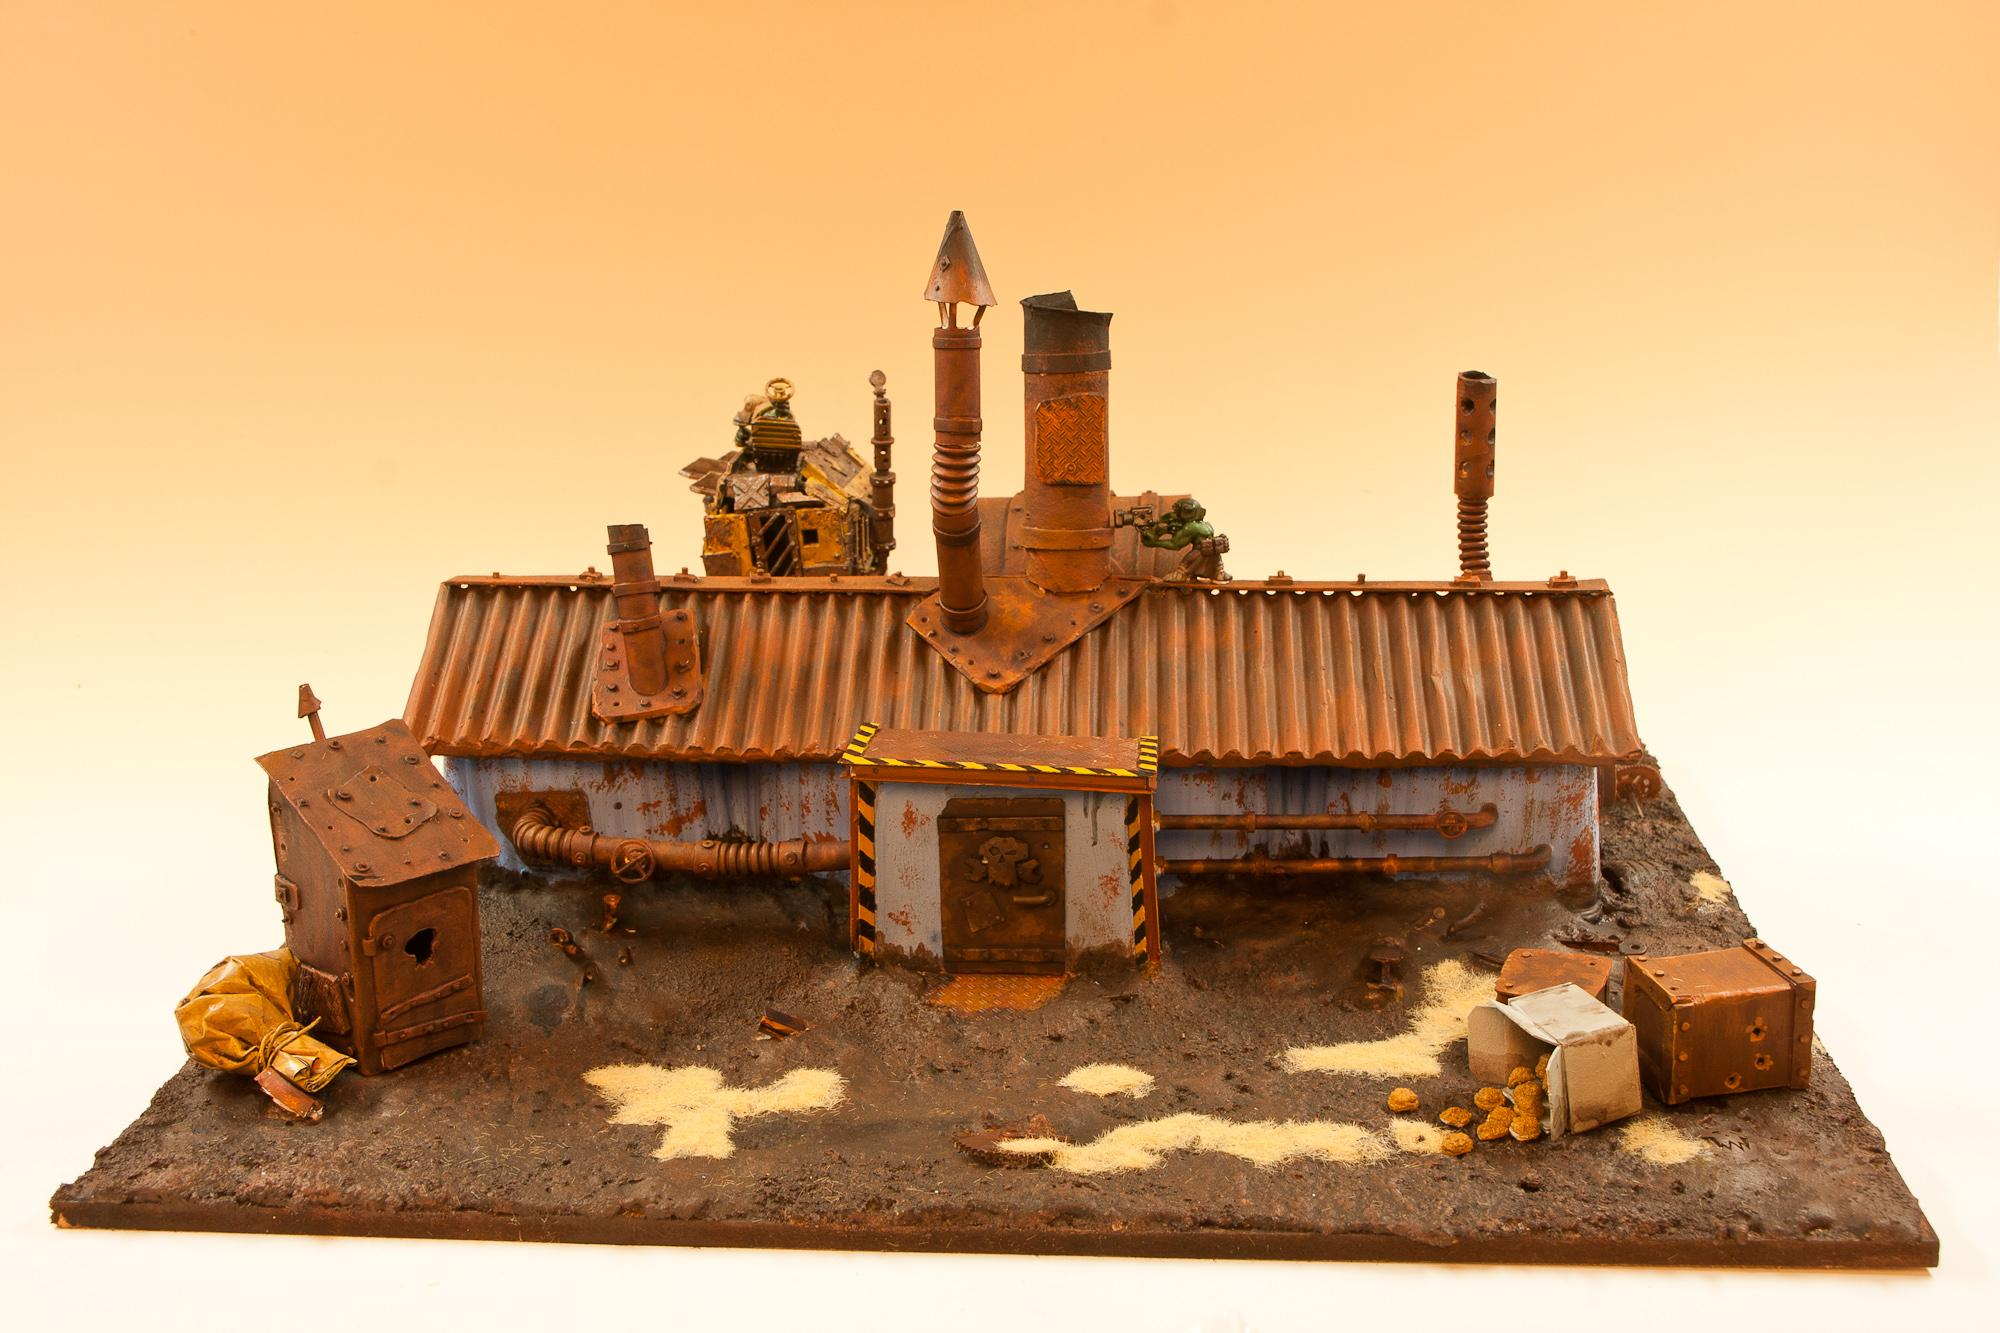 Buildings, Chimney, Competition, Cookie, Dirt, House, Orks, Outouse, Package, Rust, Scratch Build, Terrain, Toilet